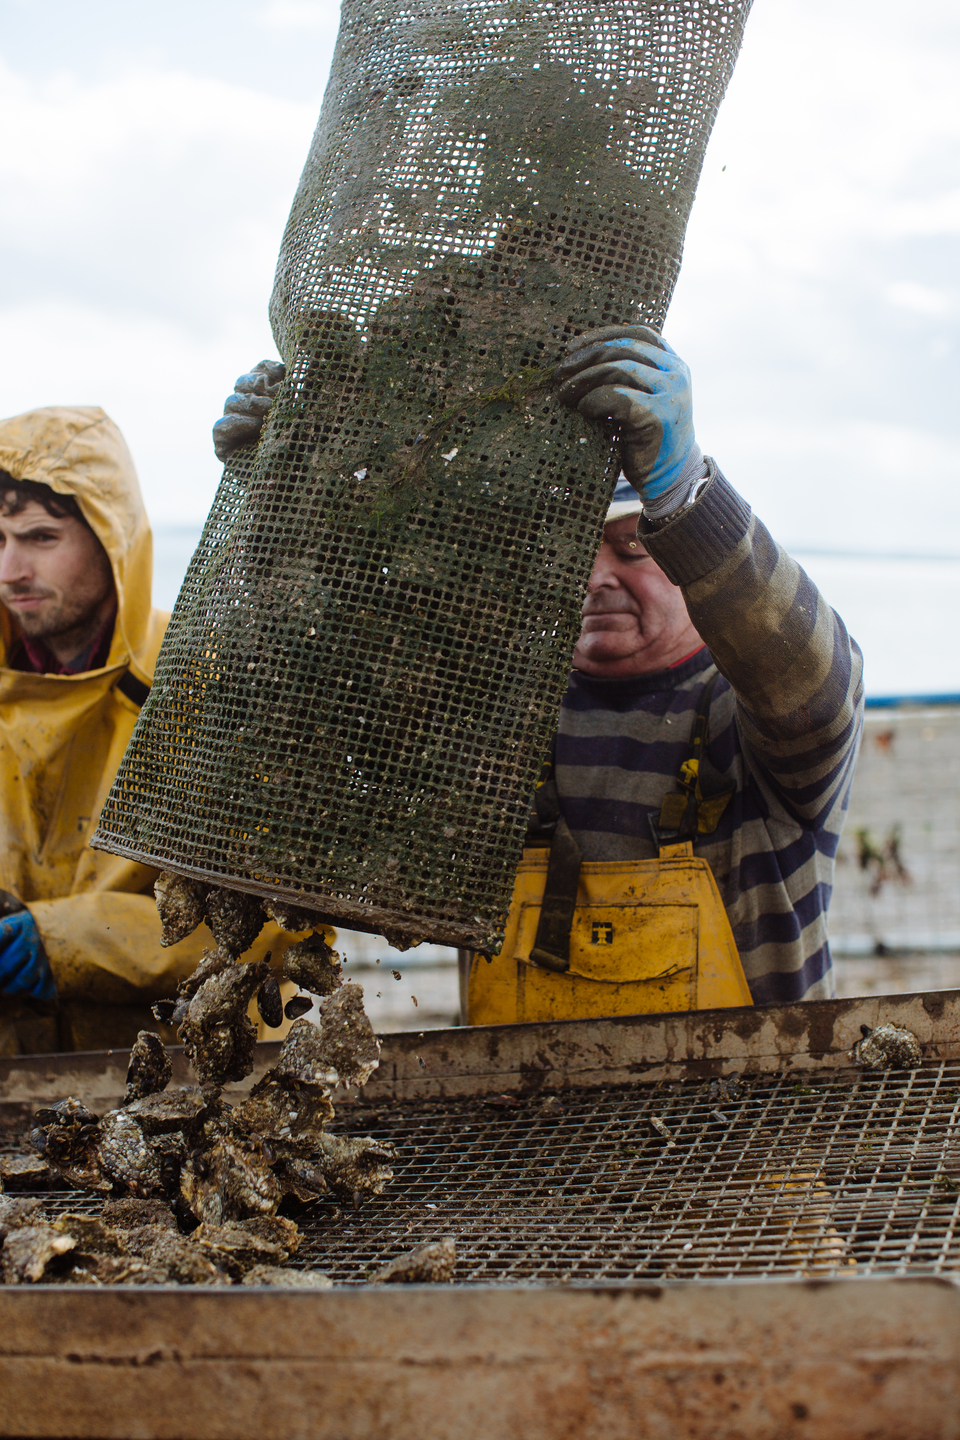 Cromane Bay Shellfish grading oysters out of bag @edschofieldphoto